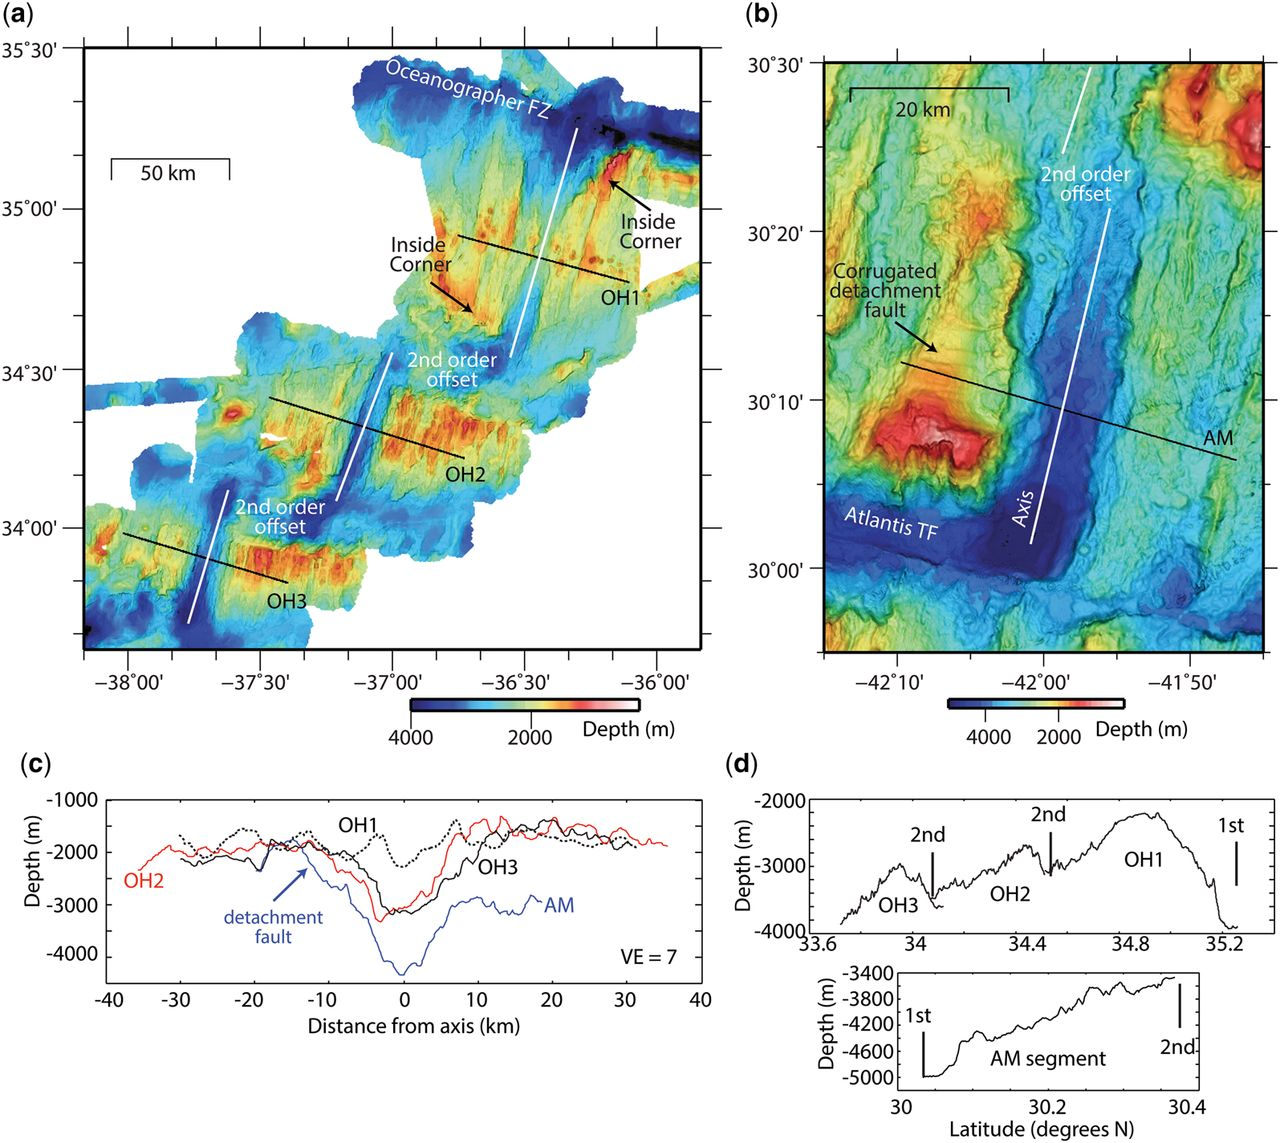 Tectonic and magmatic segmentation of the global ocean ridge tectonic and magmatic segmentation of the global ocean ridge system a synthesis of observations geological society london special publications sciox Gallery